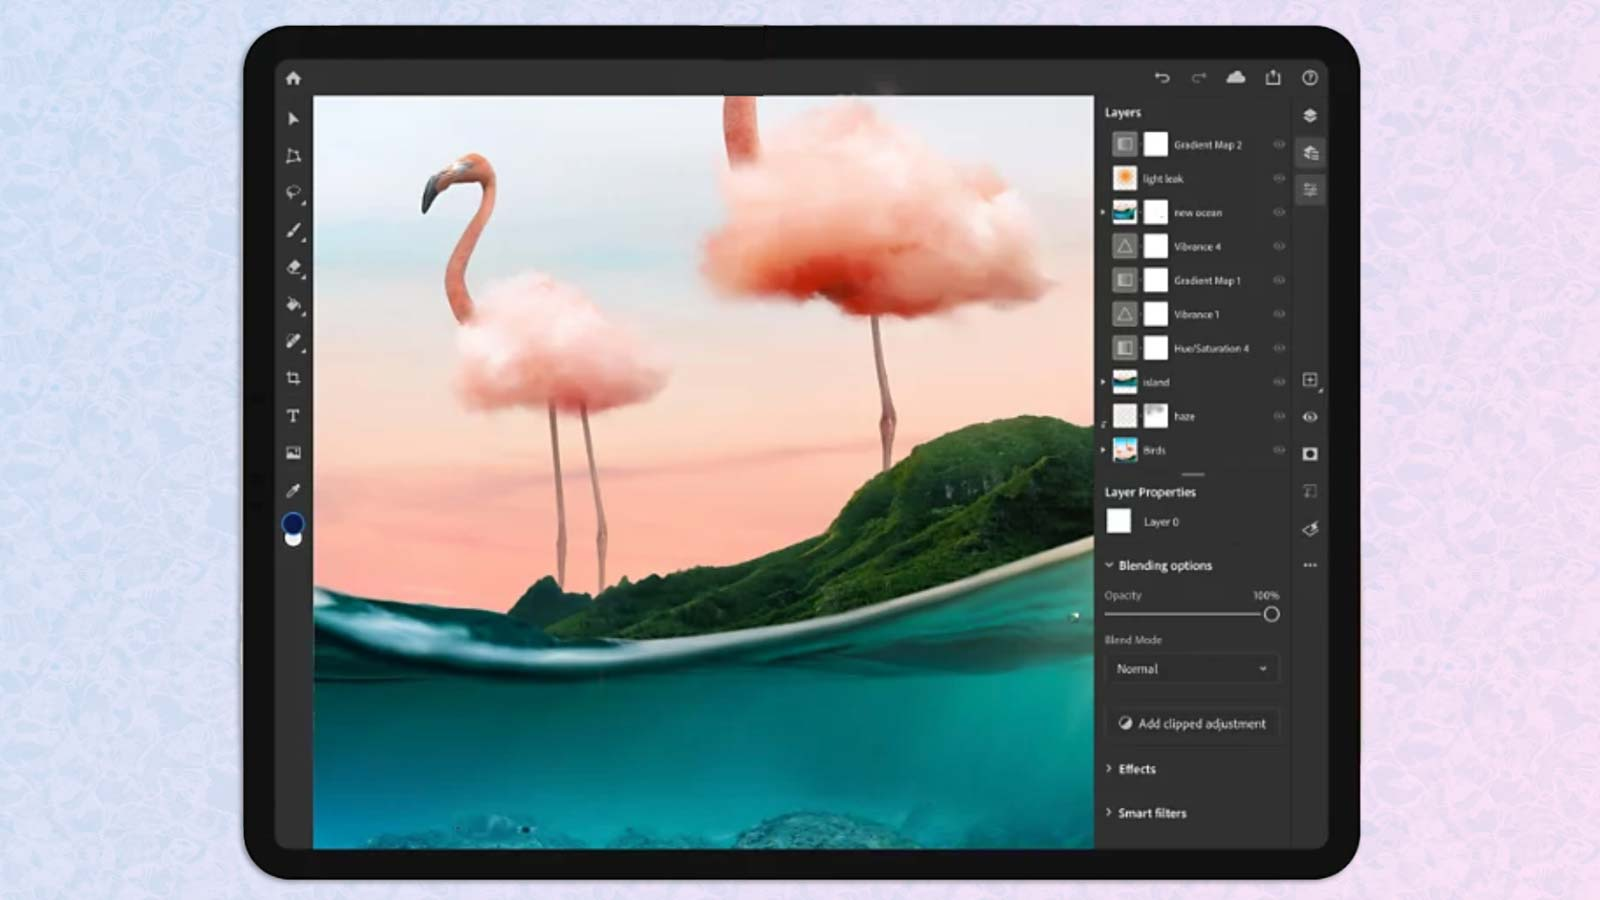 Buy Adobe Photoshop Cc For Photographers With Bitcoin